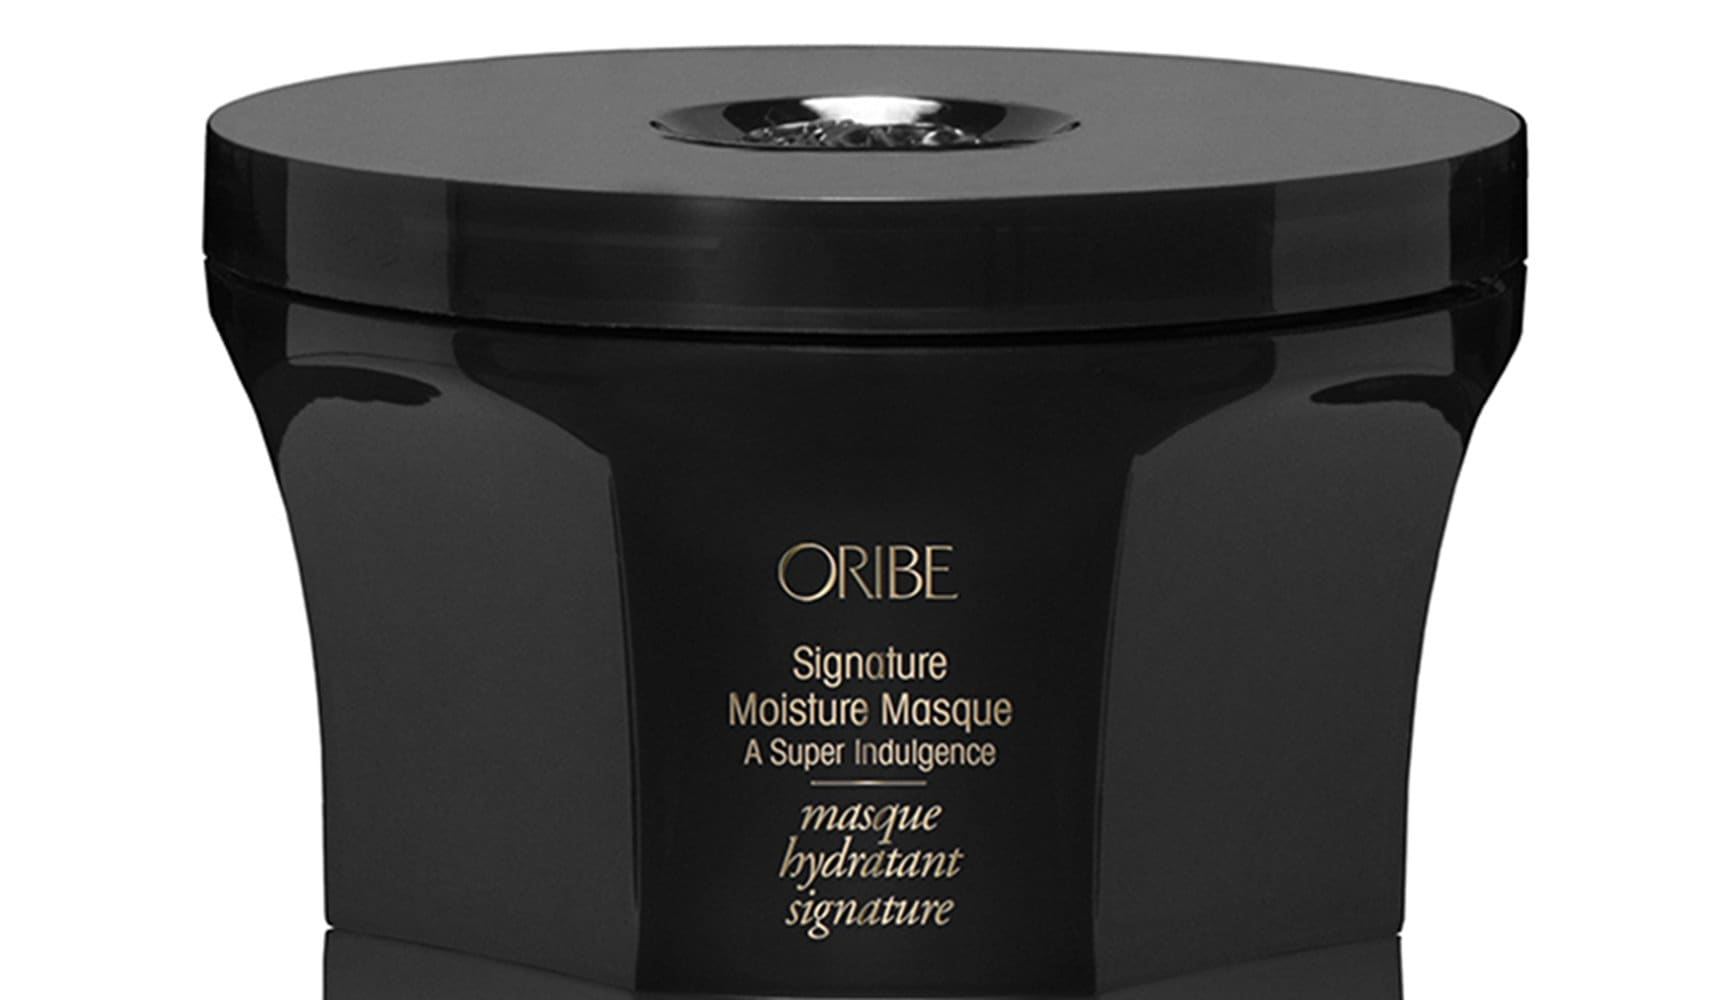 Signature Moisture Masque 175ml | Oribe